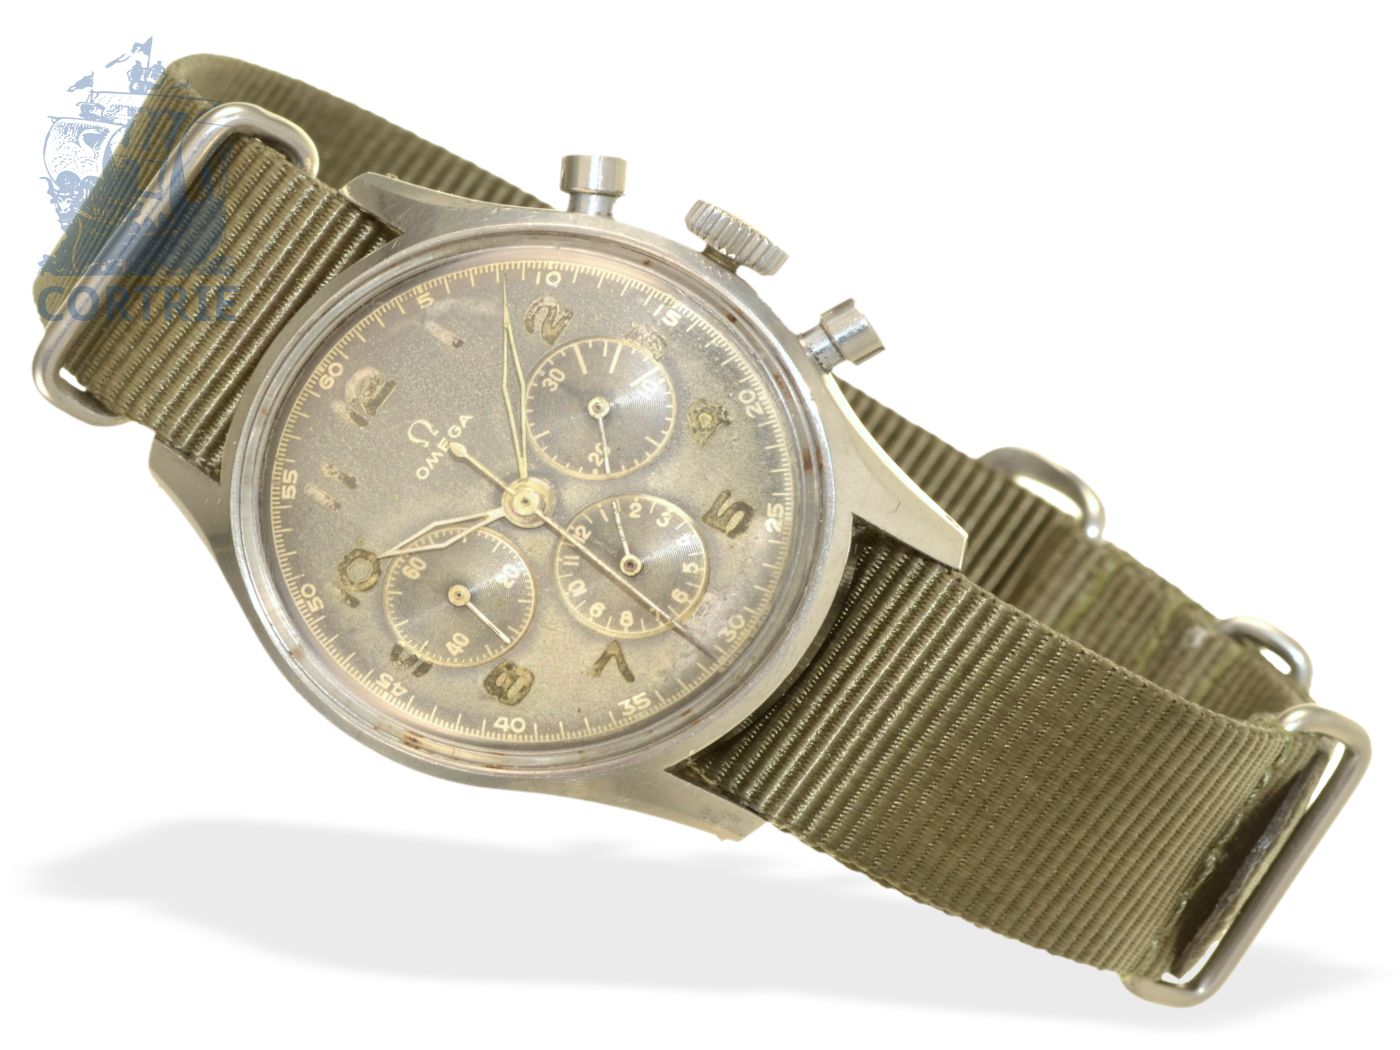 Wristwatch: very early, probably military Omega stainless steel chronograph, ca. 1945, reference numeral 2451-